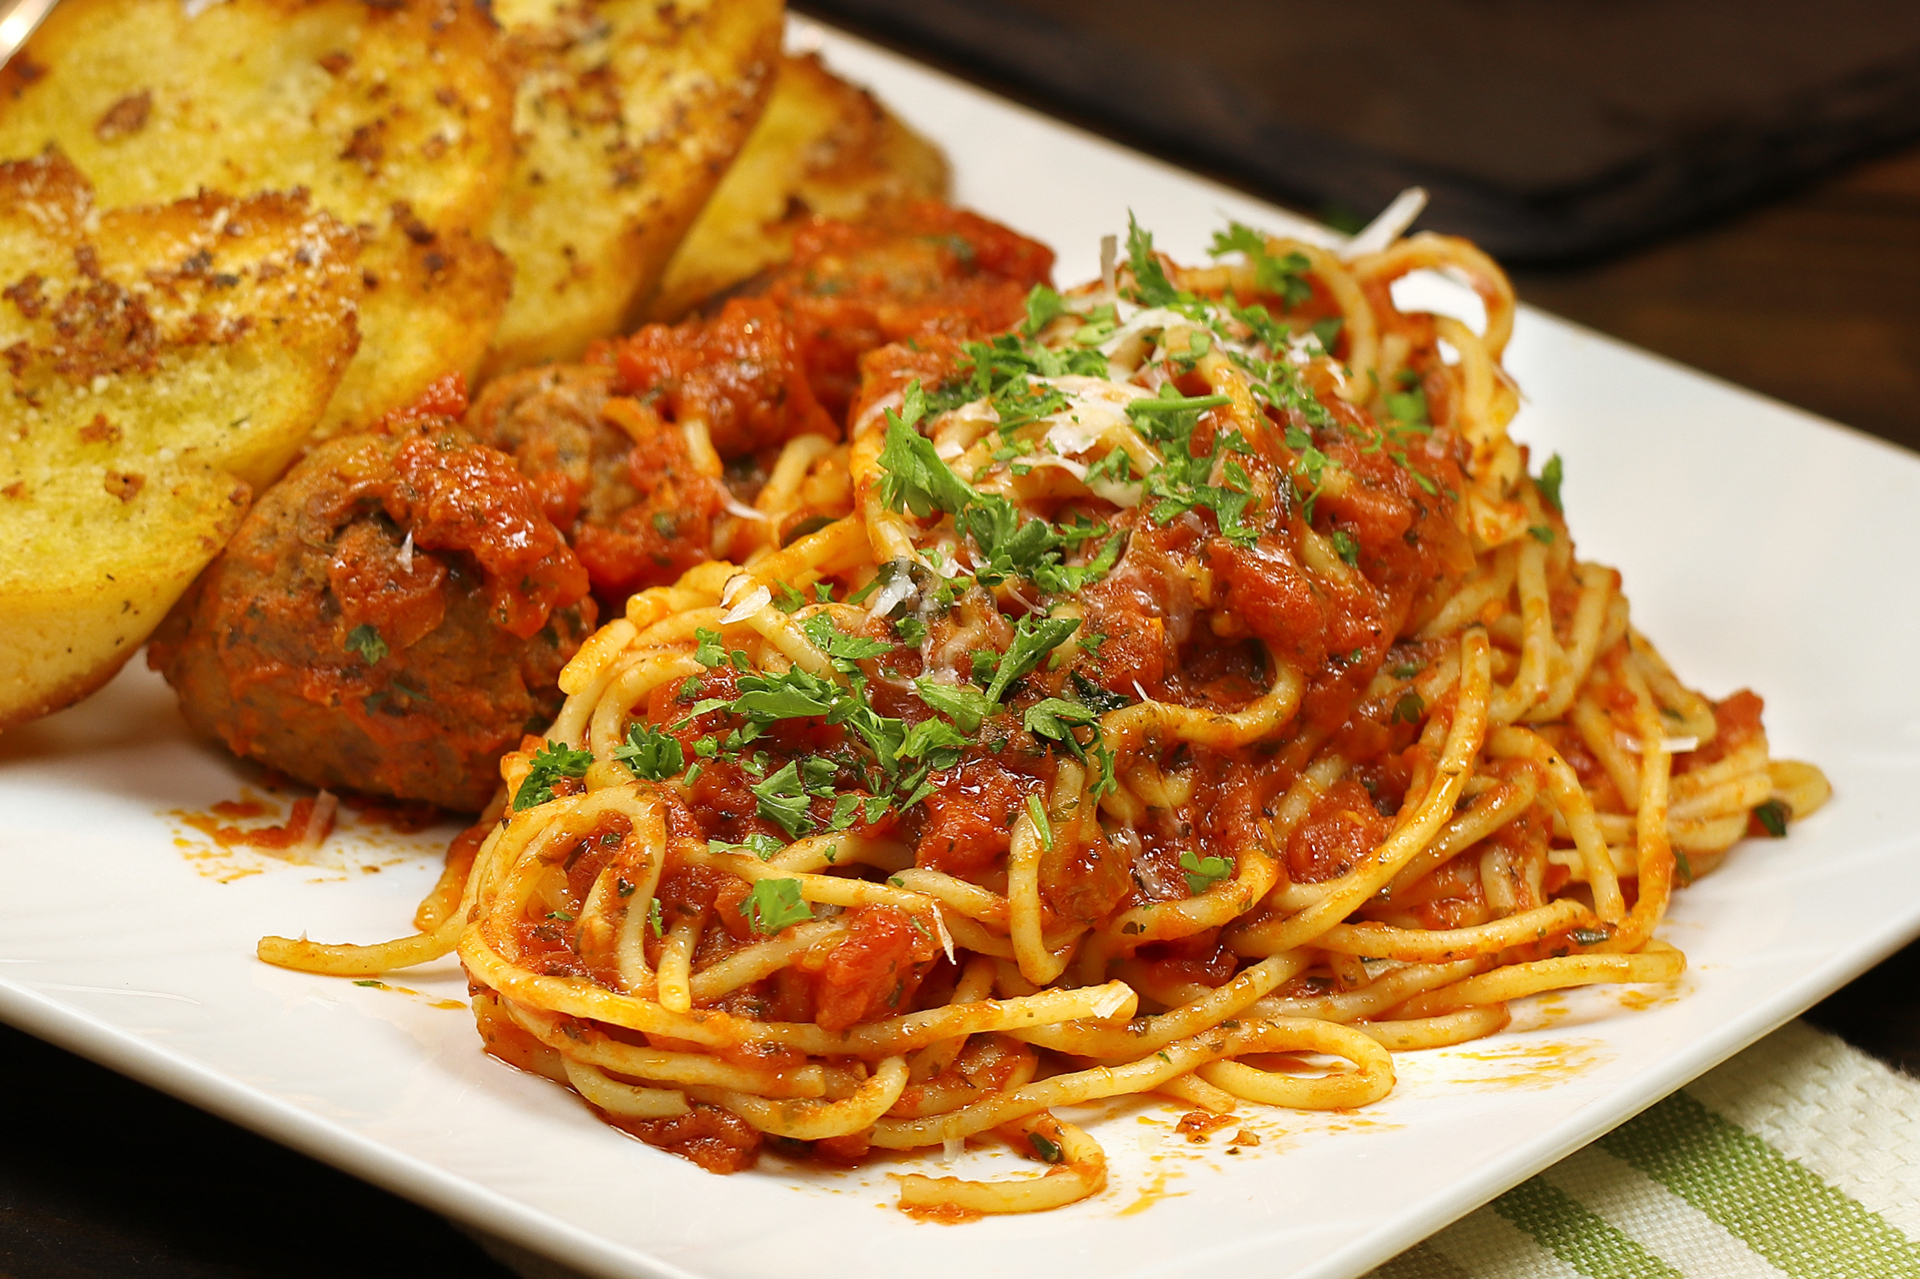 Prepare to Eat Well on National Spaghetti